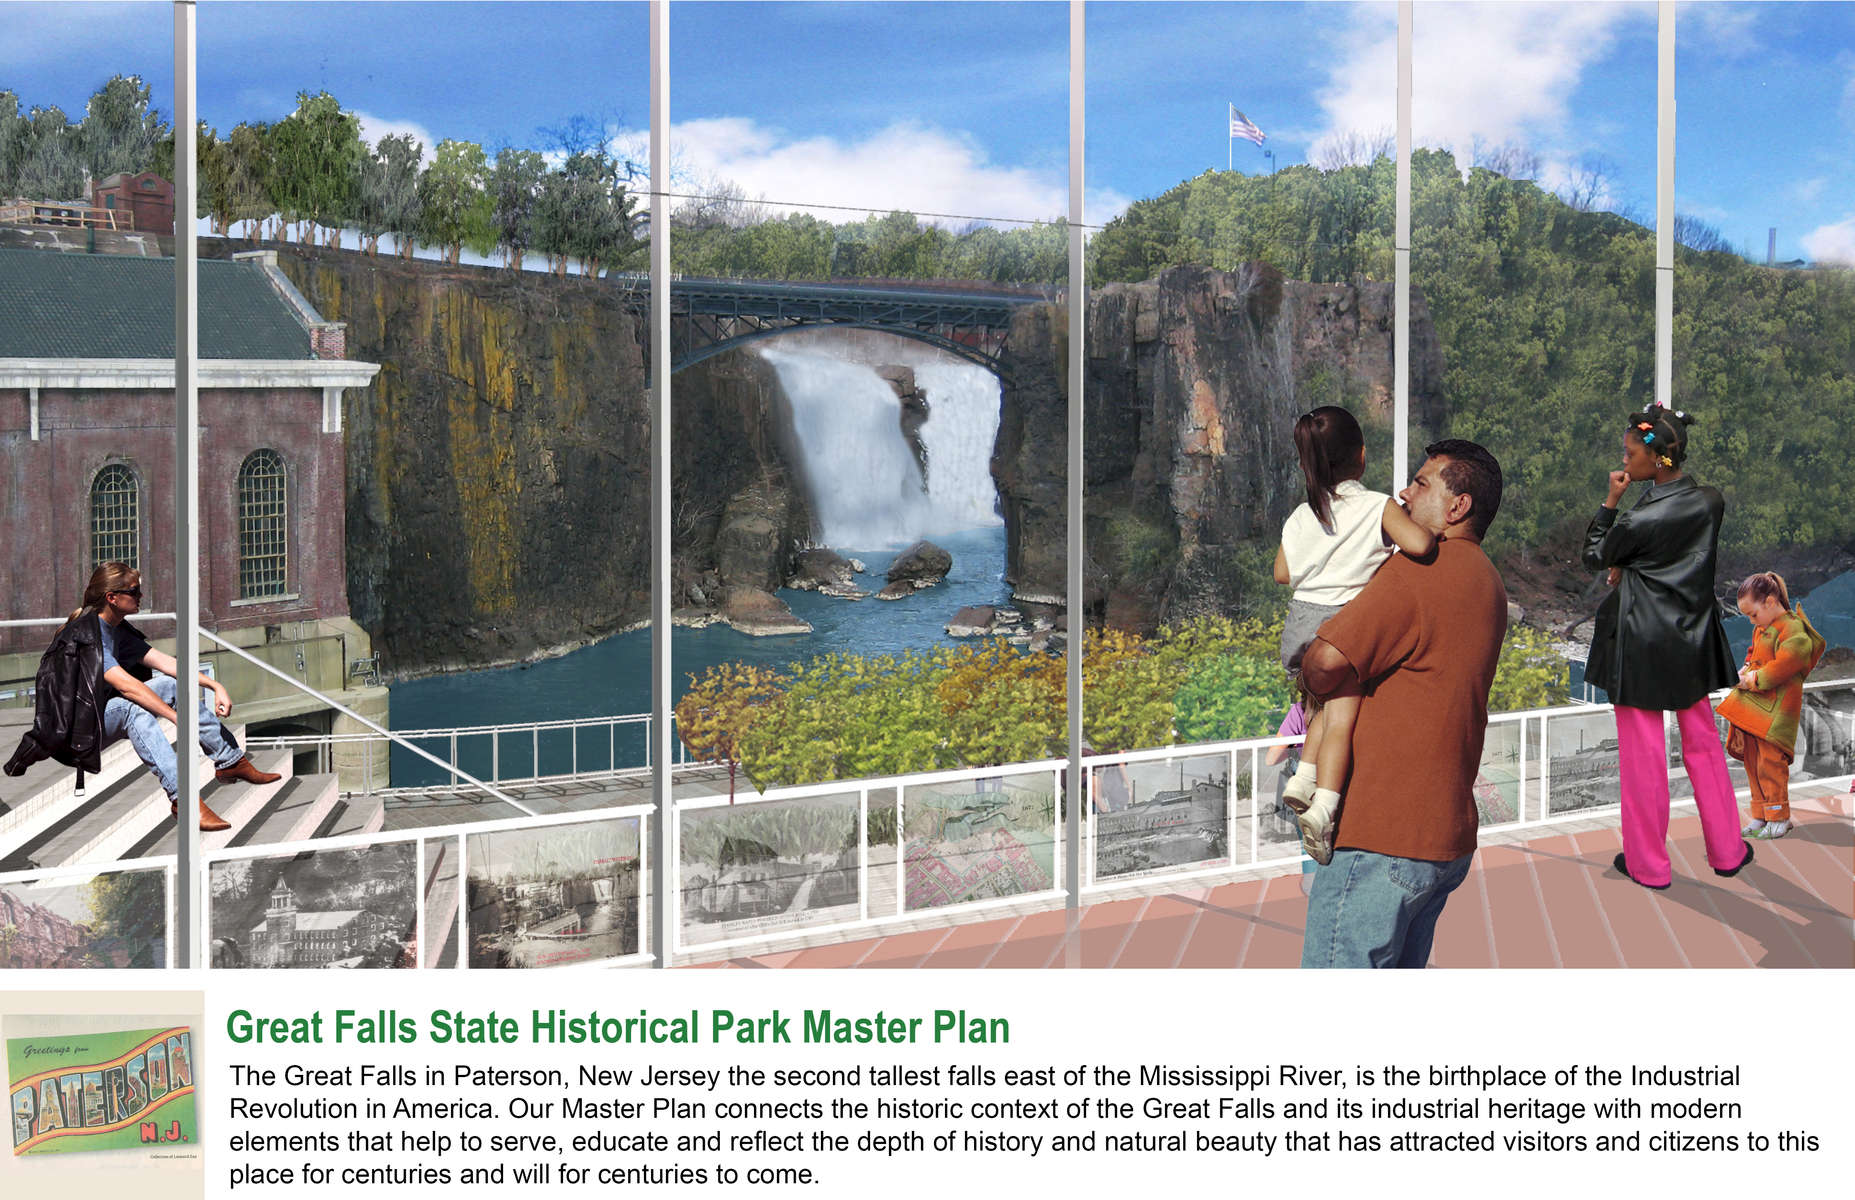 Great Falls Urban Park Master Plan